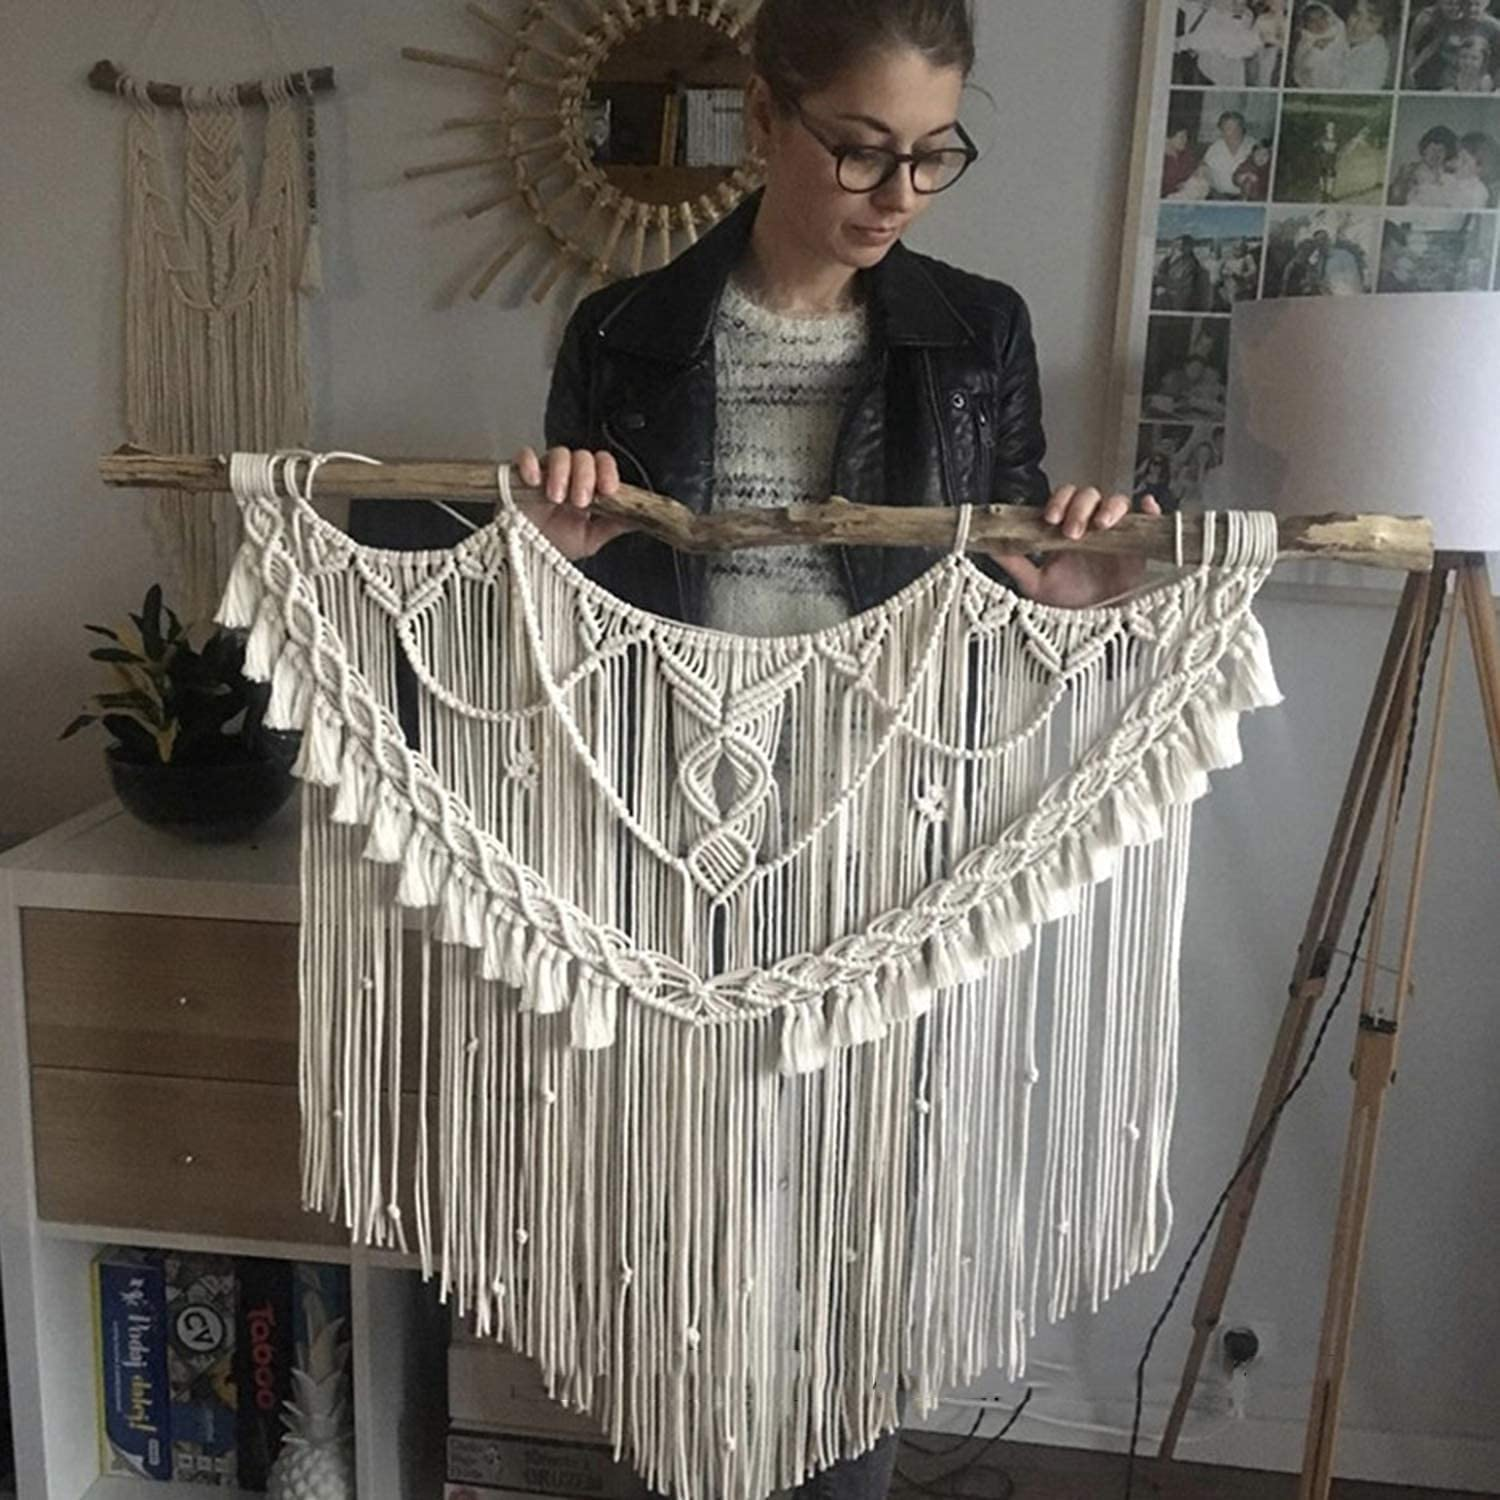 FXBFAG Macrame Super-cheap Wall Hanging Woven Popular products Ta Hand Tapestry Pendant